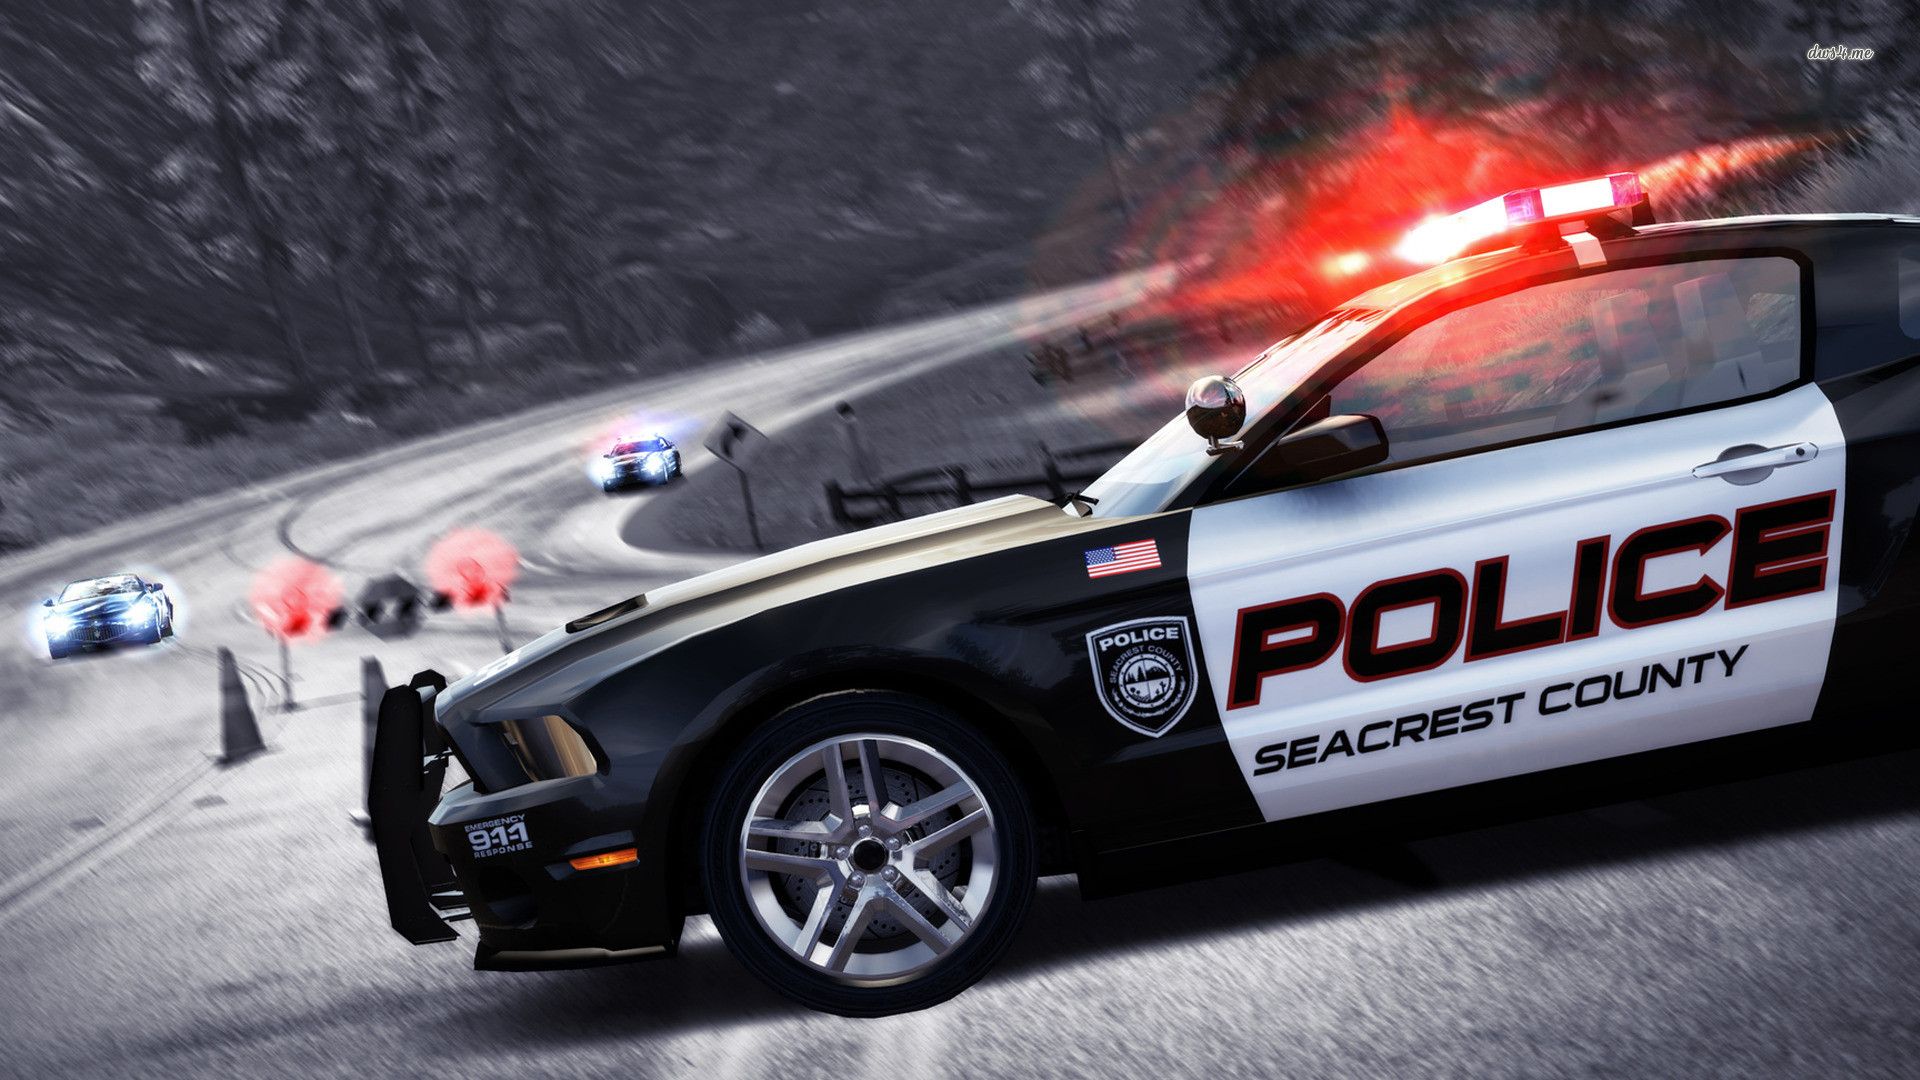 1920x1080 Need for Speed - Hot Pursuit police car wallpaper